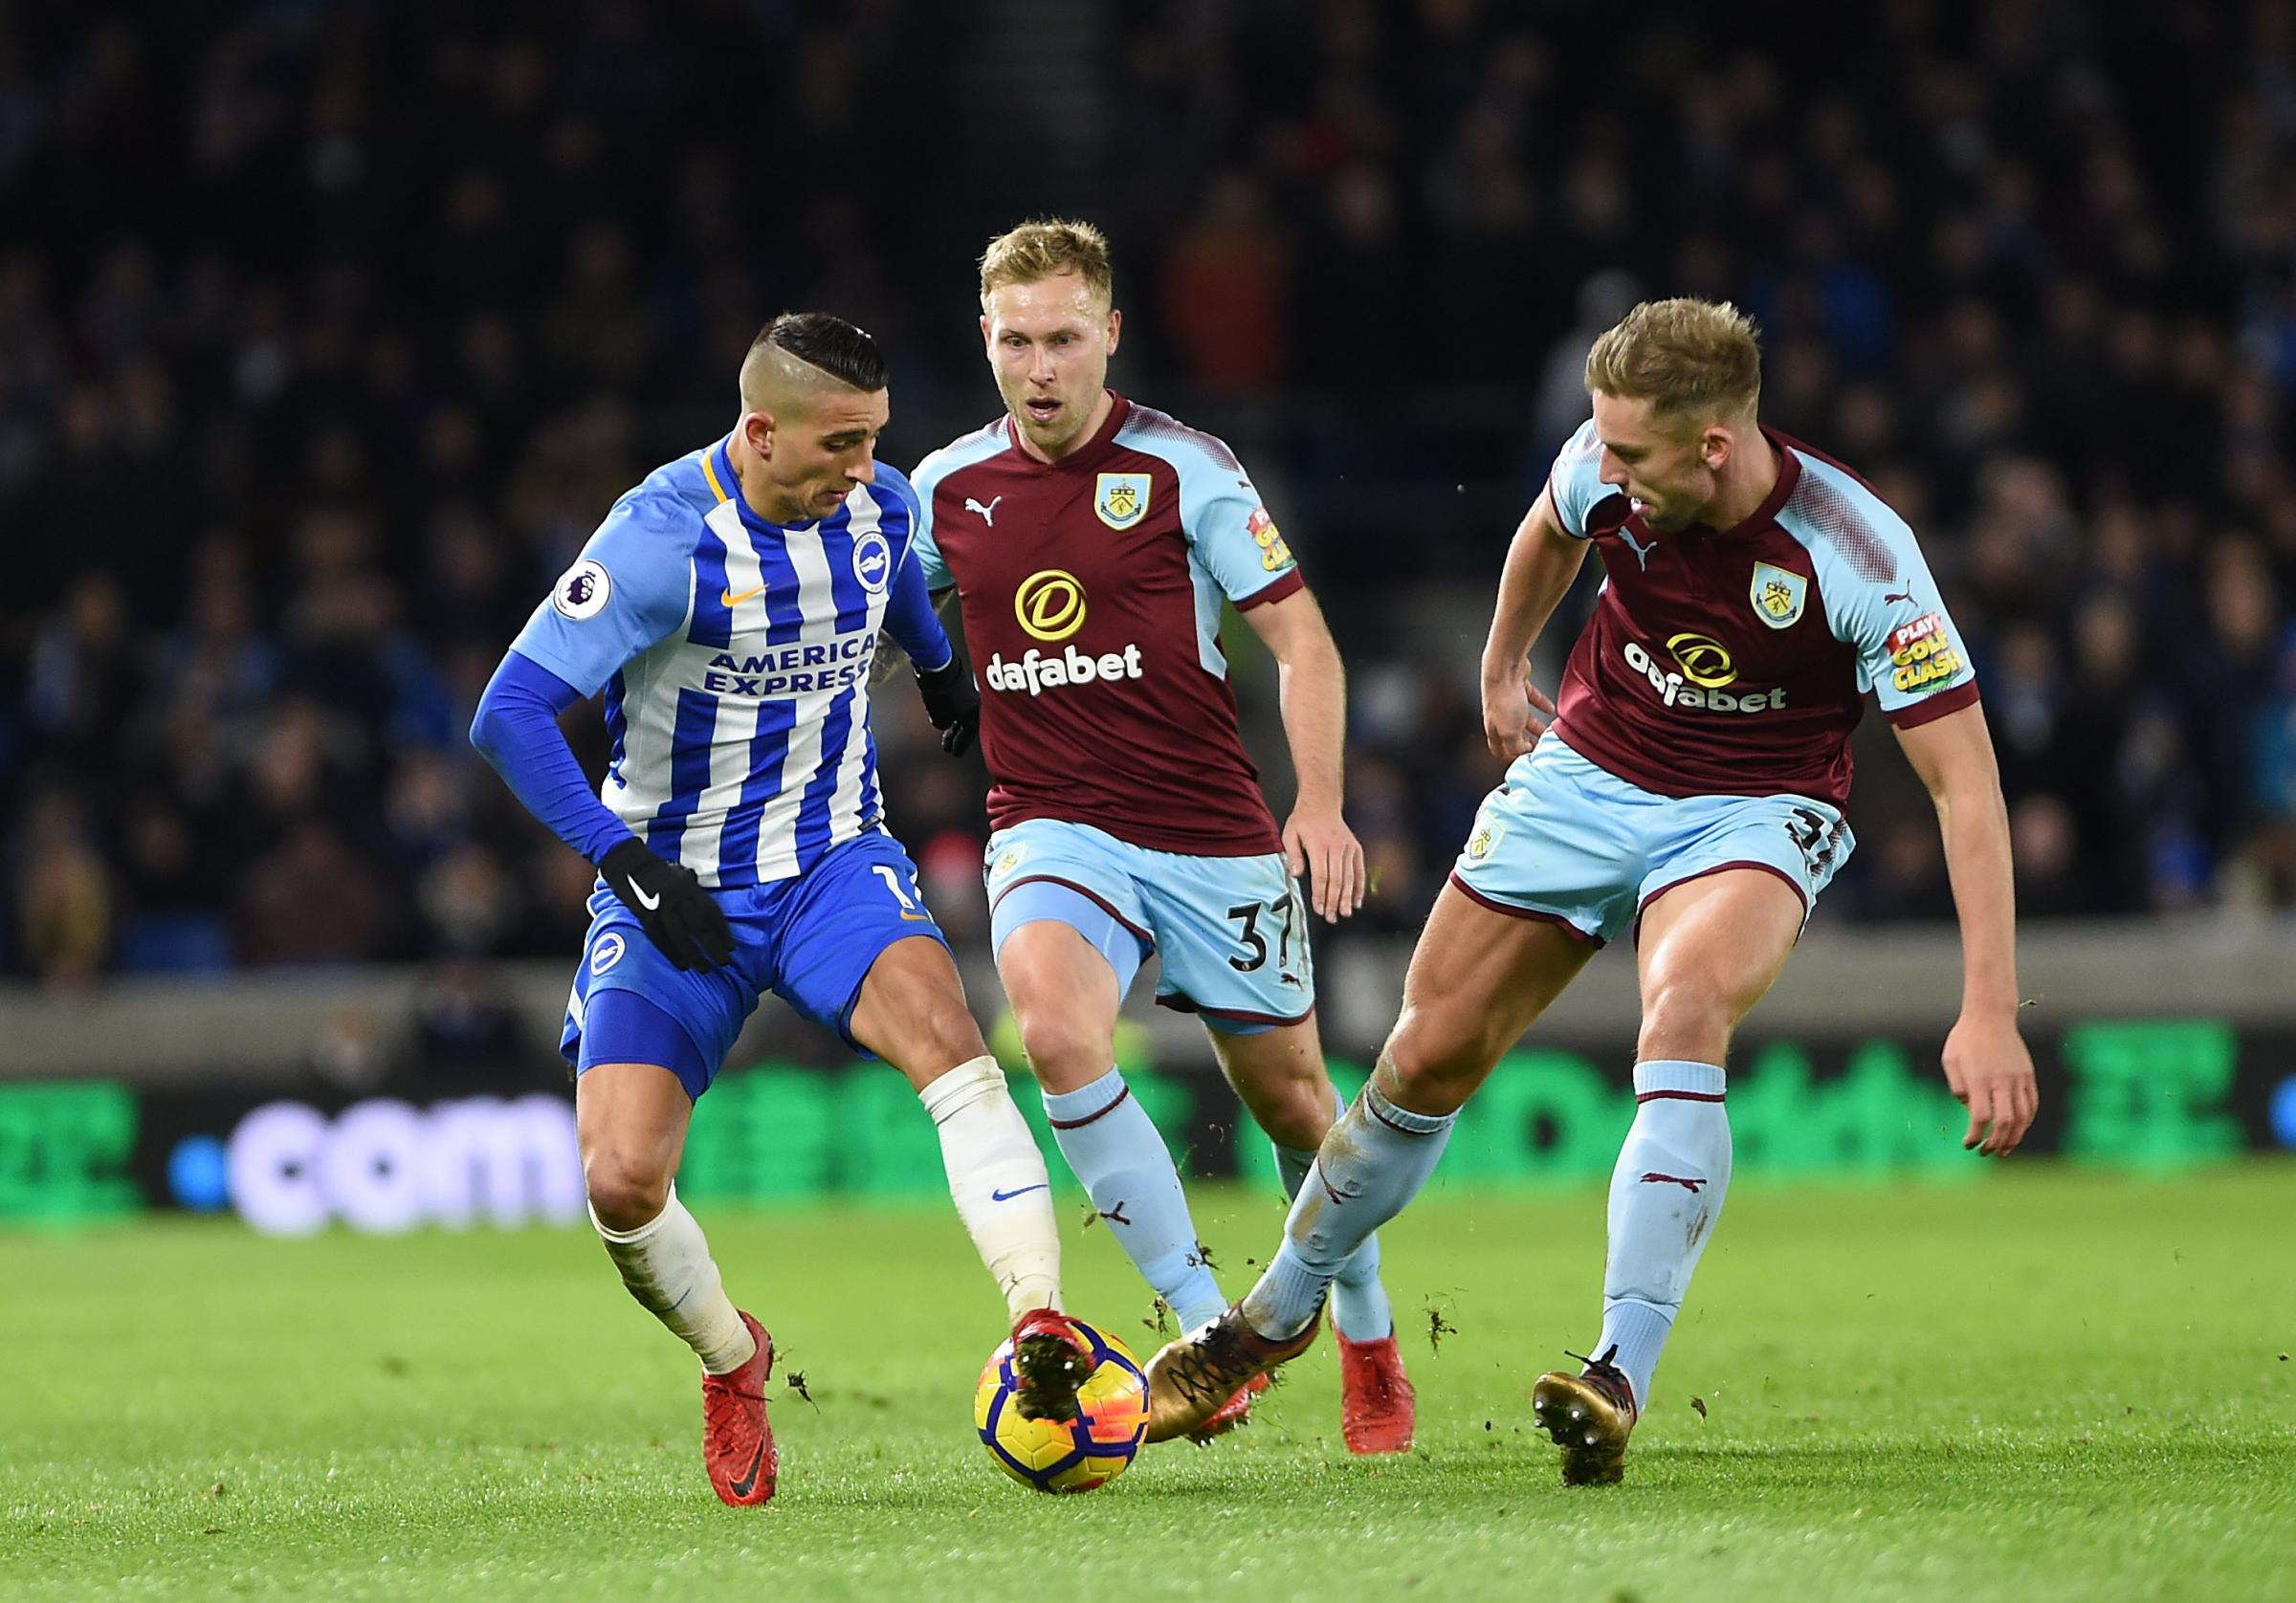 Brighton see off Coventry to reach FA Cup quarter-finals